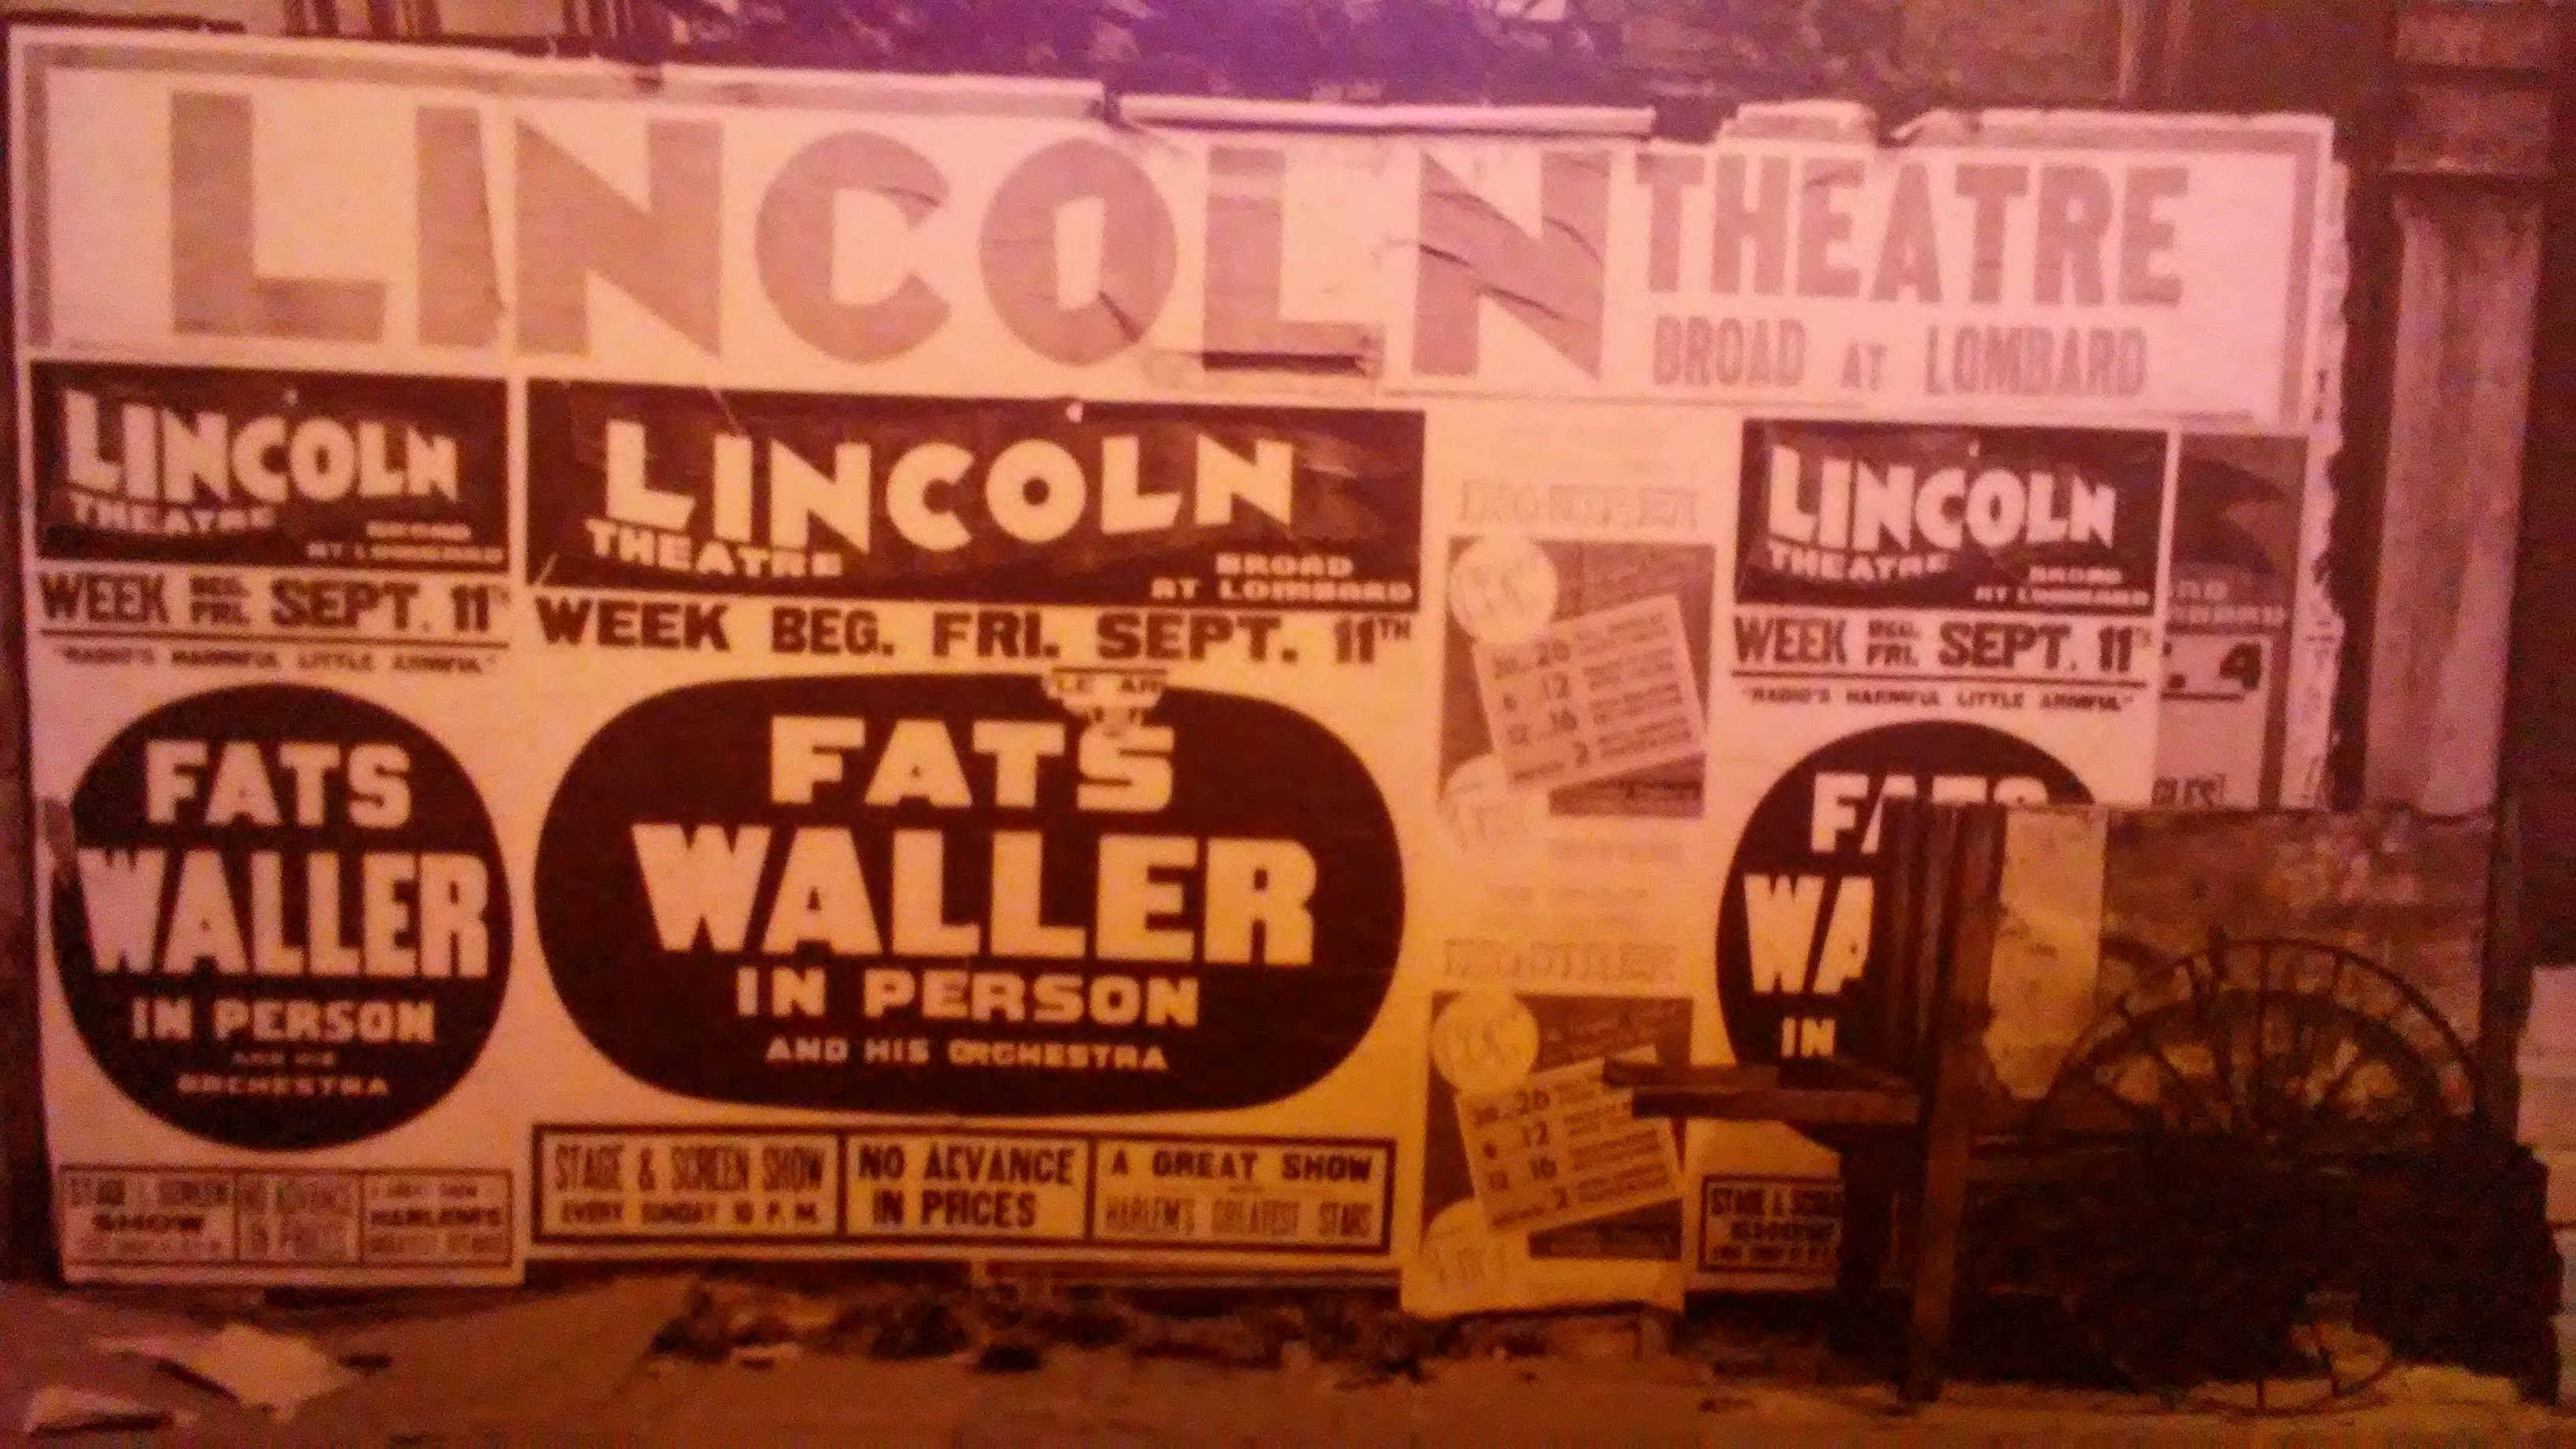 Lincoln Theater 1.2